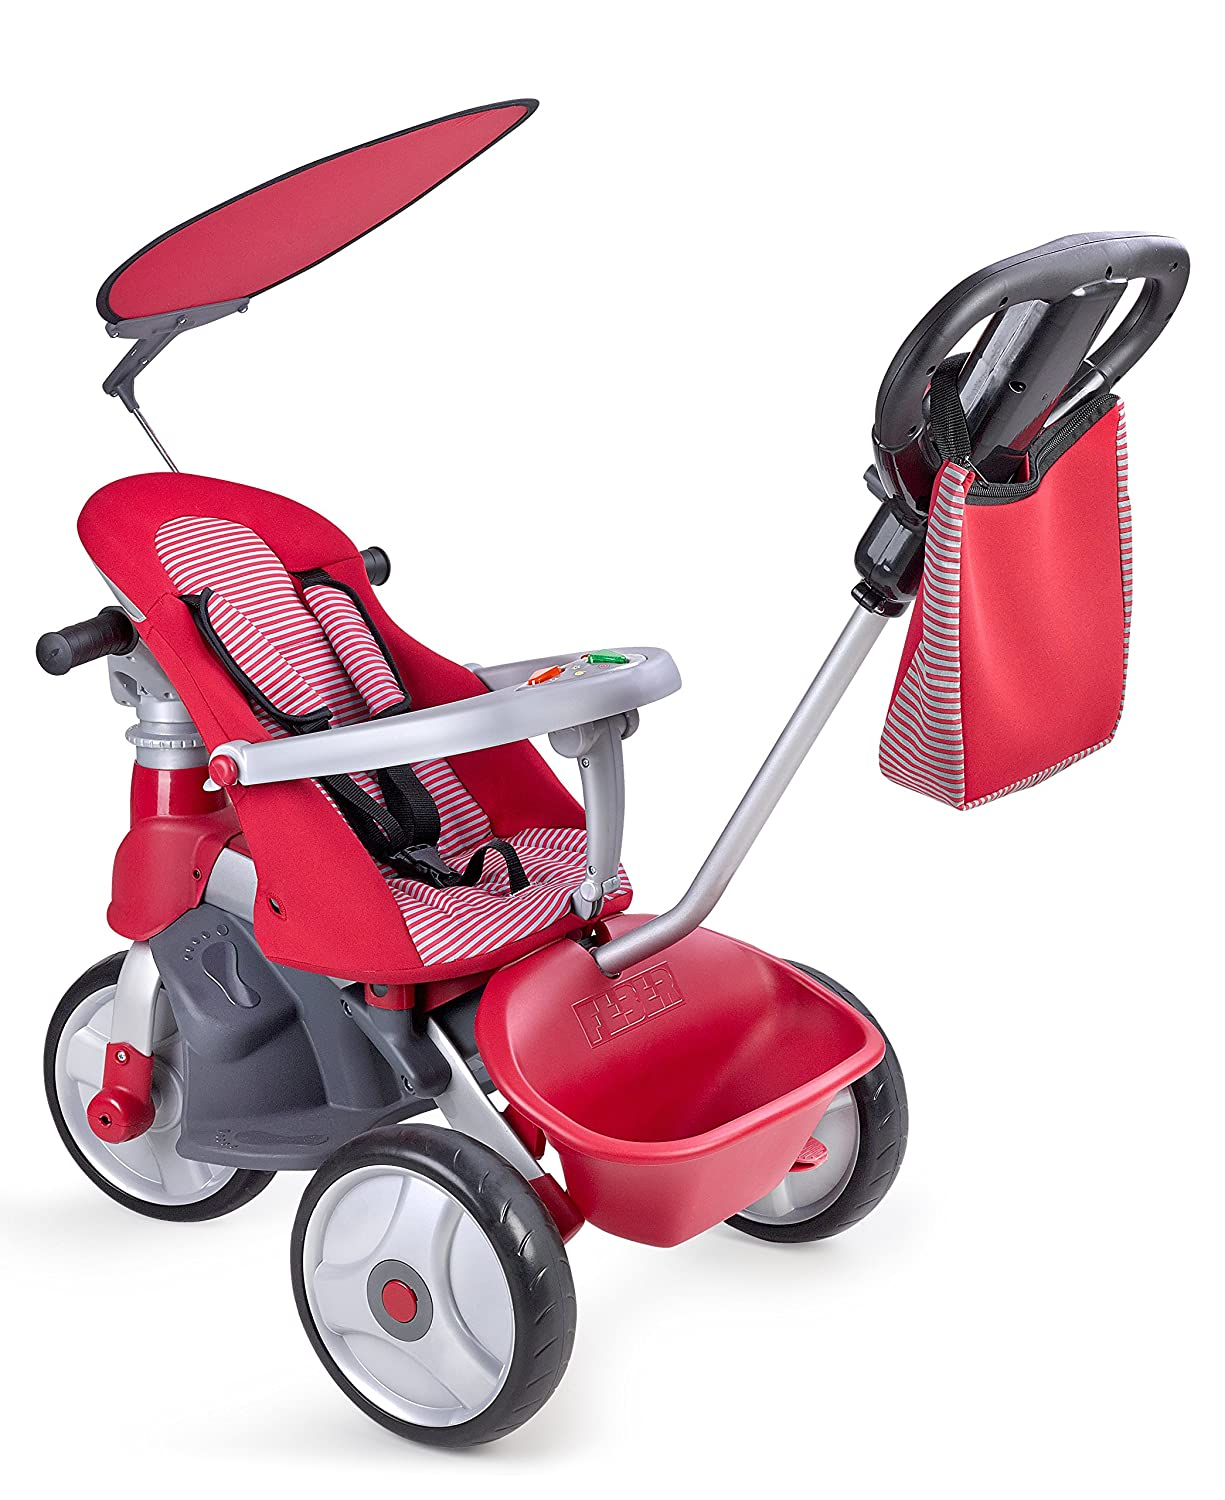 Feber Baby Trike Easy Evolution triciclo color rojo Famosa